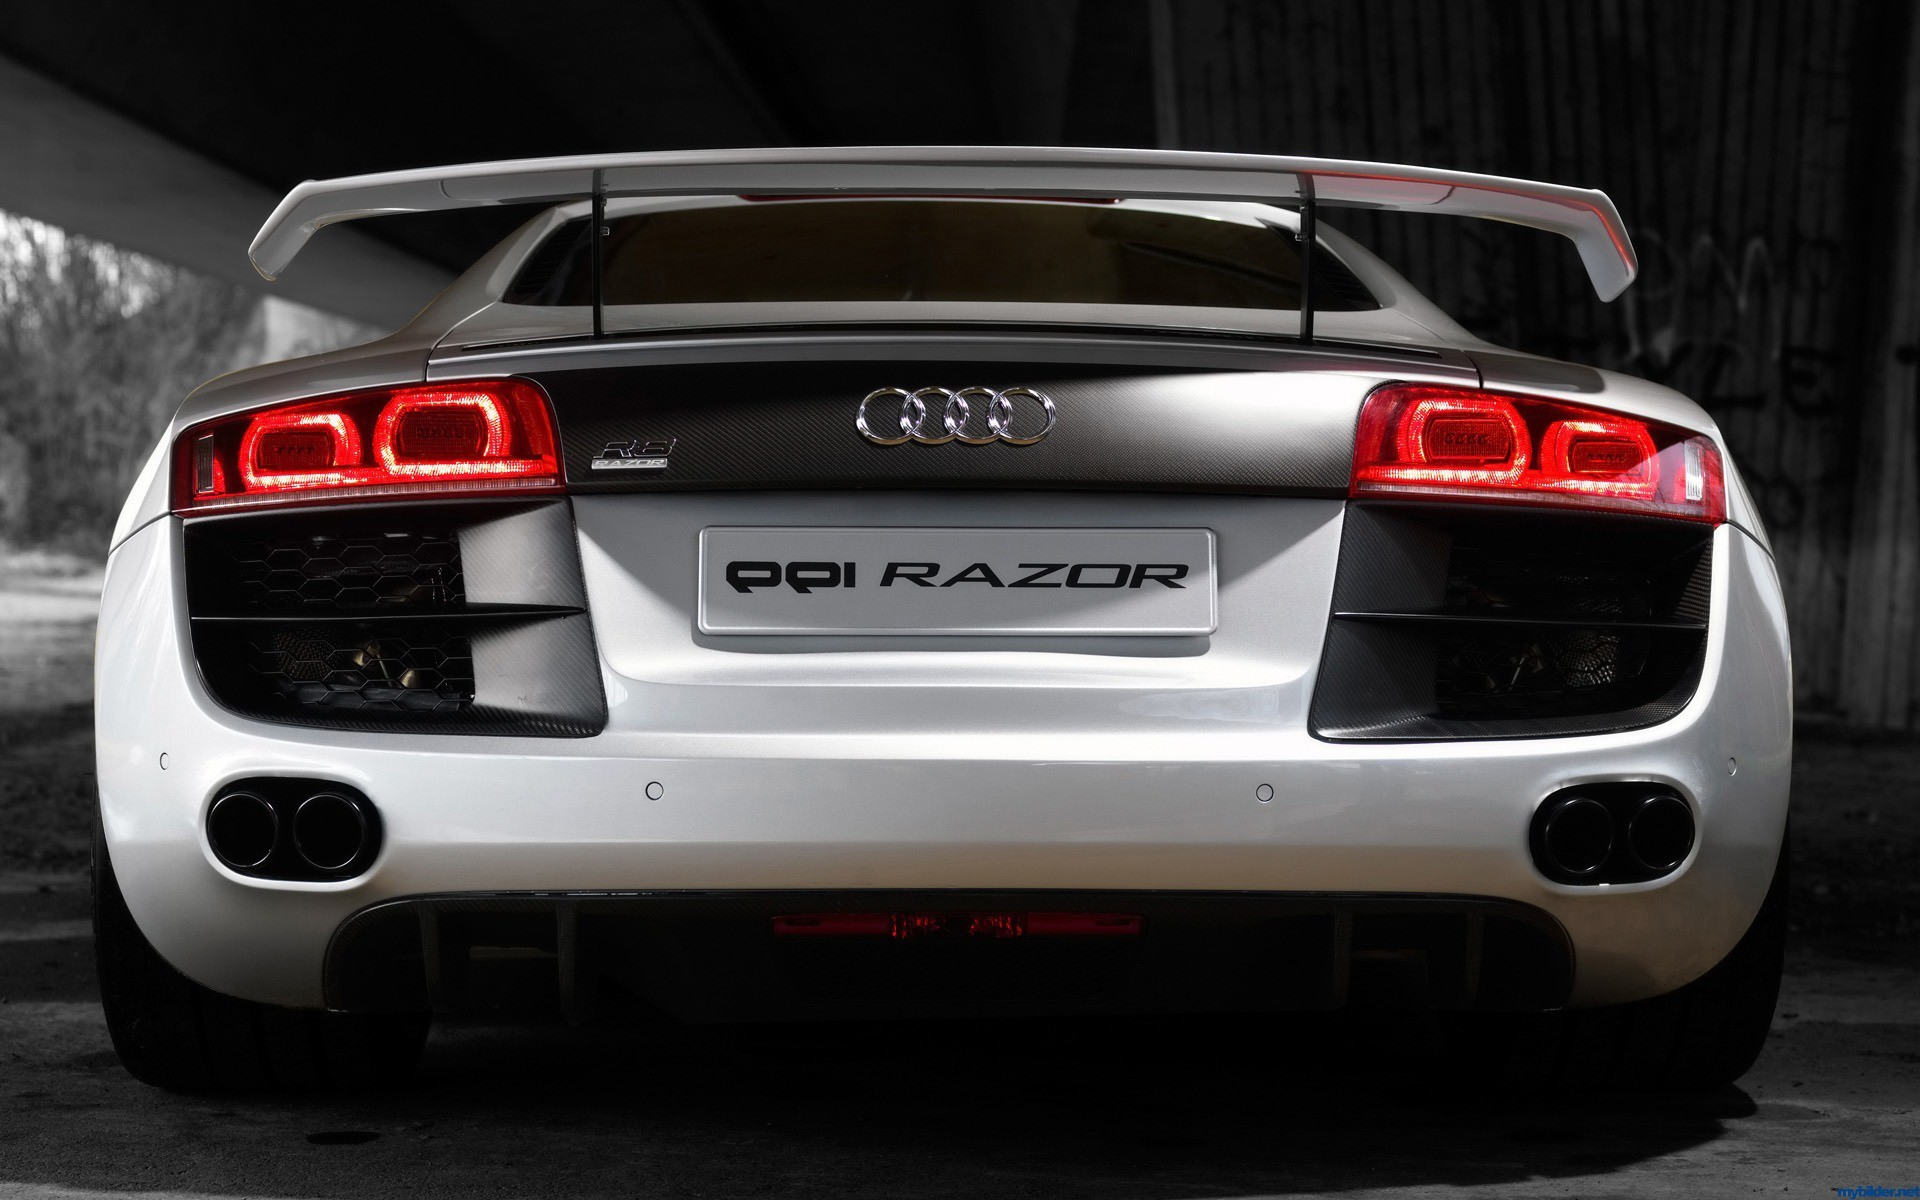 back cars Audi audi HD Wallpaper